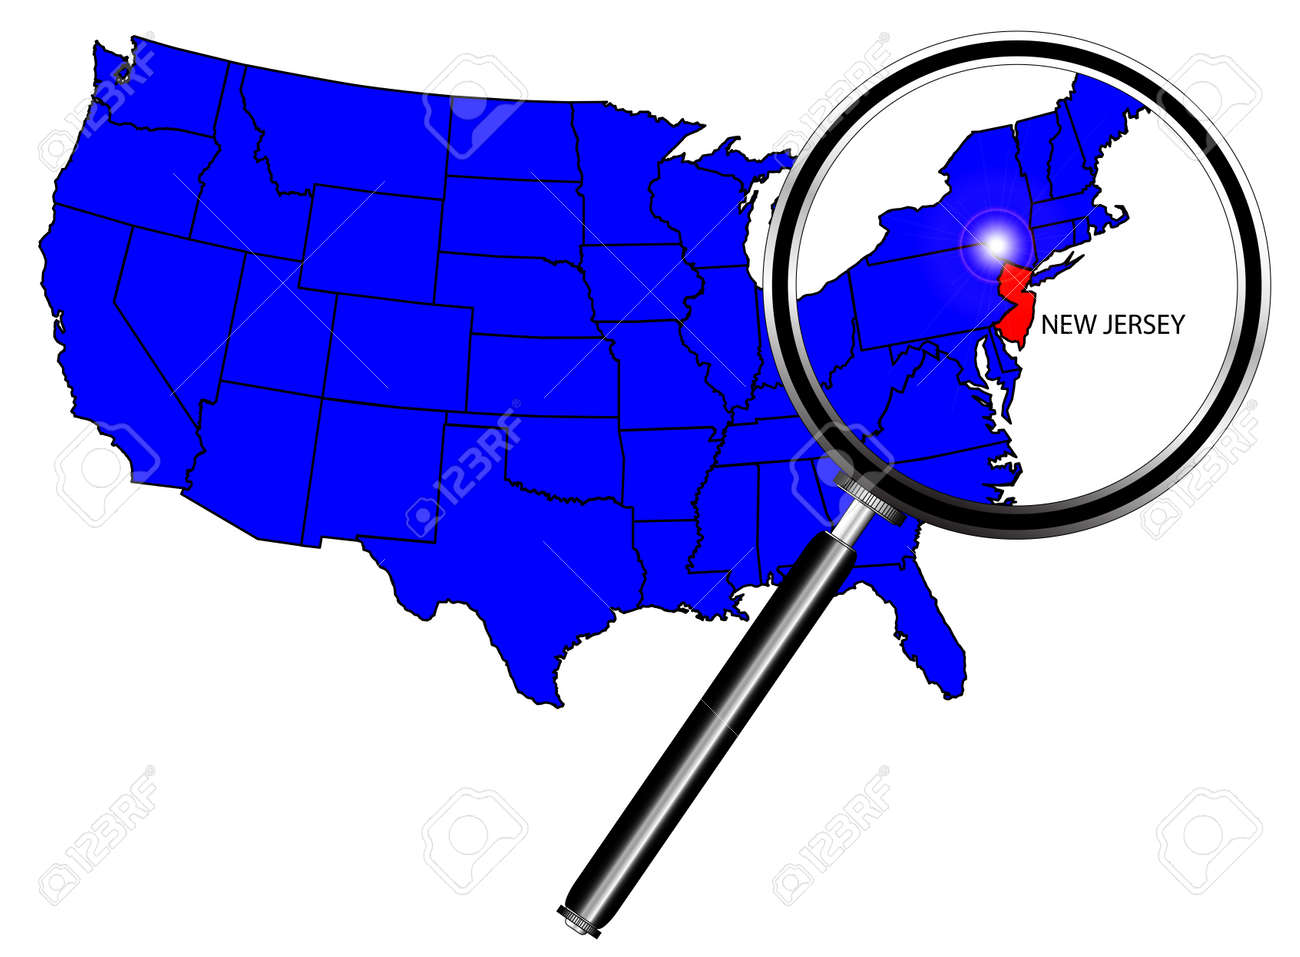 New Jersey State Outline Set Into A Map Of The United States